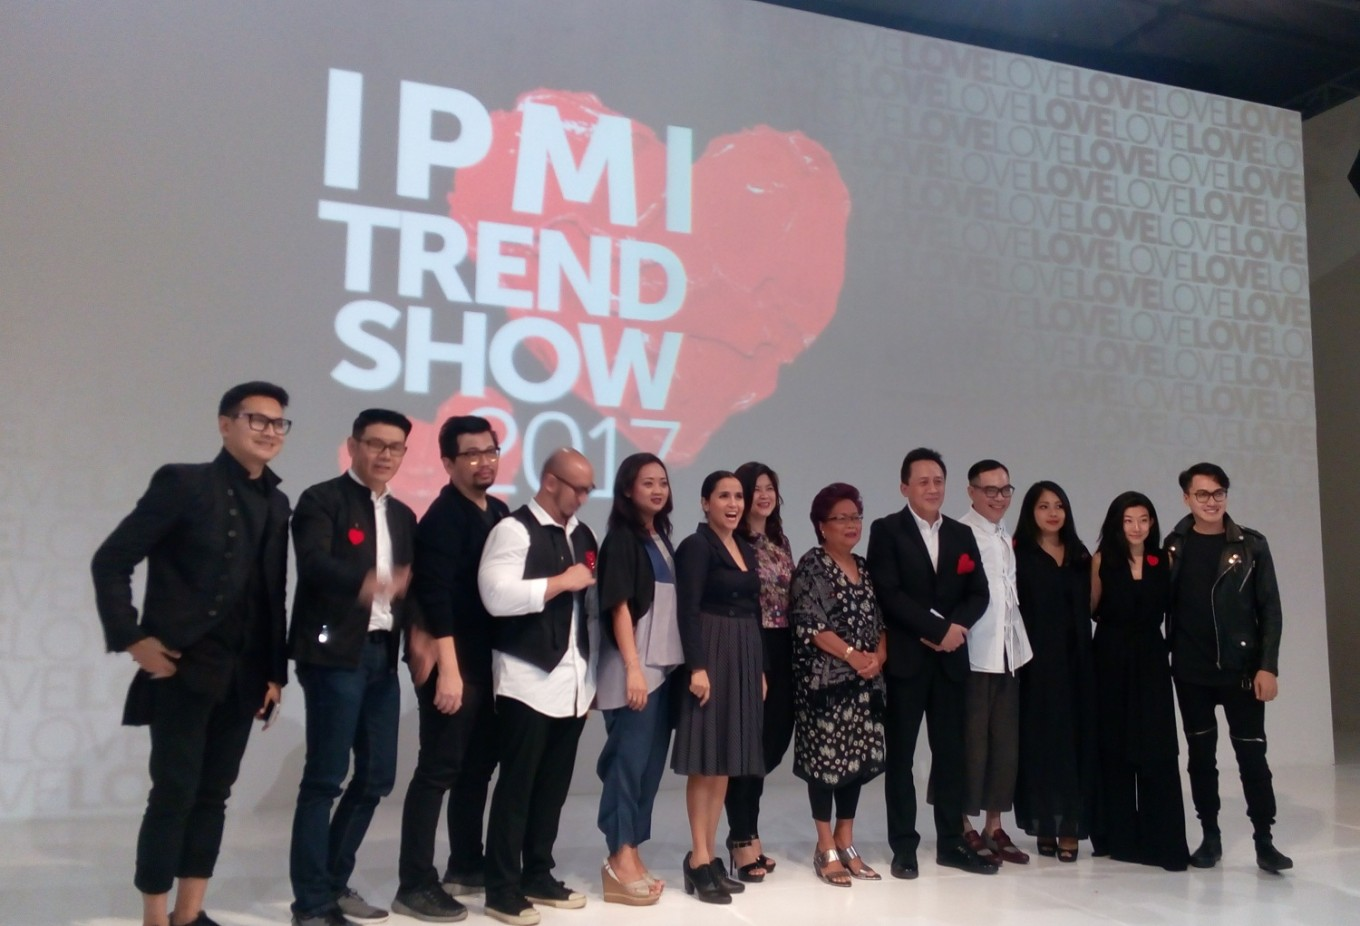 IPMI's annual fashion show still going strong after 30 years